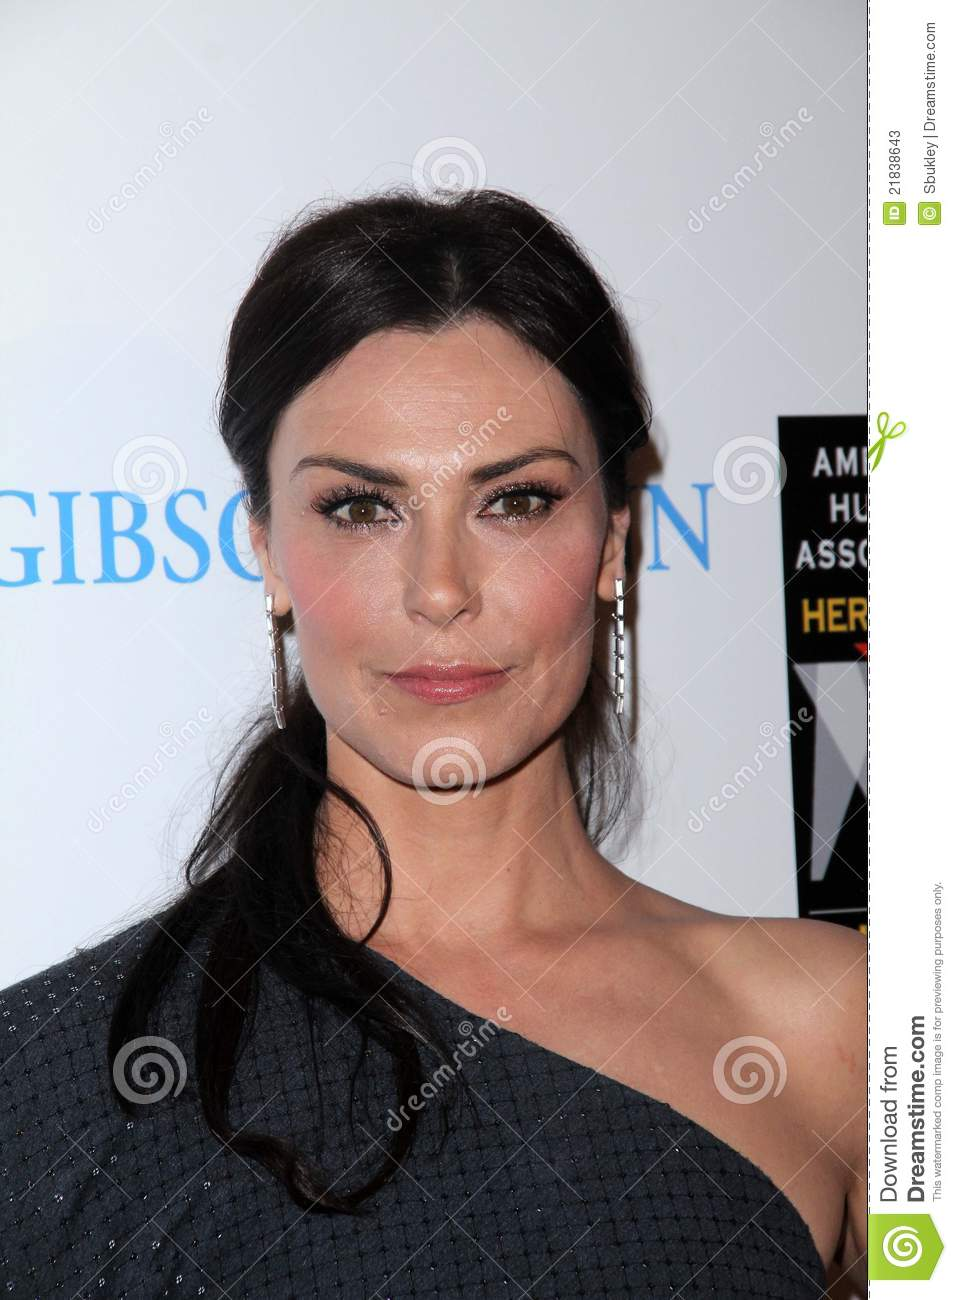 michelle forbes actressmichelle forbes young, michelle forbes lost, michelle forbes instagram, michelle forbes actress, michelle forbes (i), michelle forbes twitter, michelle forbes husband, michelle forbes imdb, michelle forbes true blood, michelle forbes star trek, michelle forbes hunger games, michelle forbes orphan black, michelle forbes kalifornia, michelle forbes the killing, michelle forbes 2015, michelle forbes interview, michelle forbes tumblr, michelle forbes movies and tv shows, michelle forbes wiki, michelle forbes prison break